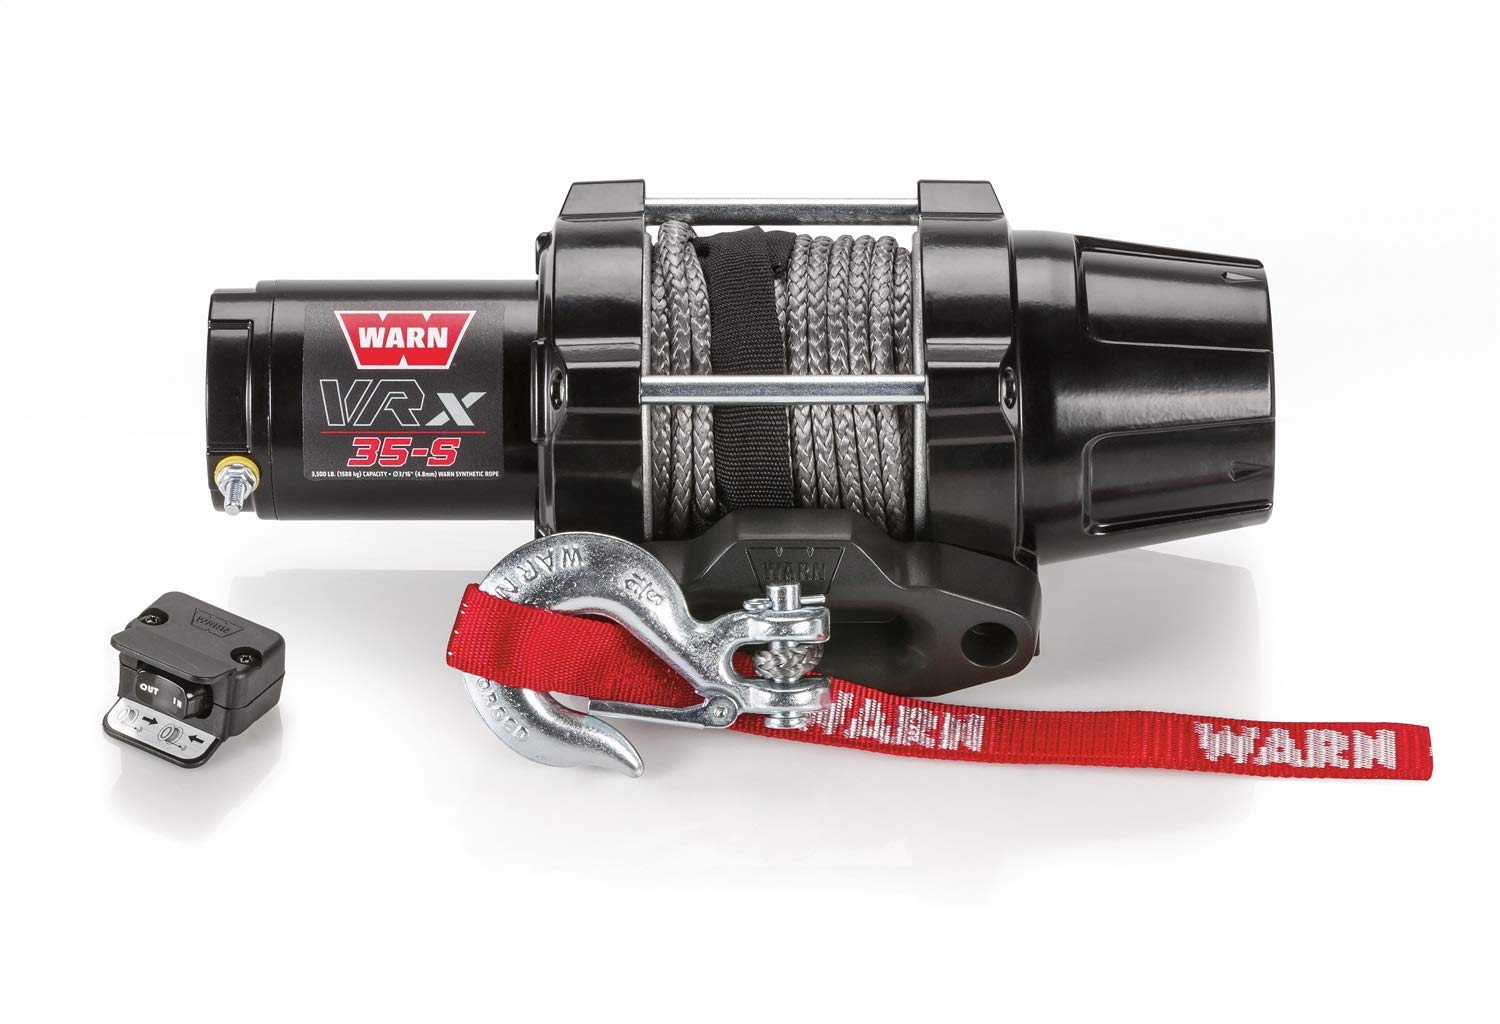 WARN 101030 VRX 35-S Powersports Winch With Synthetic Rope by WARN